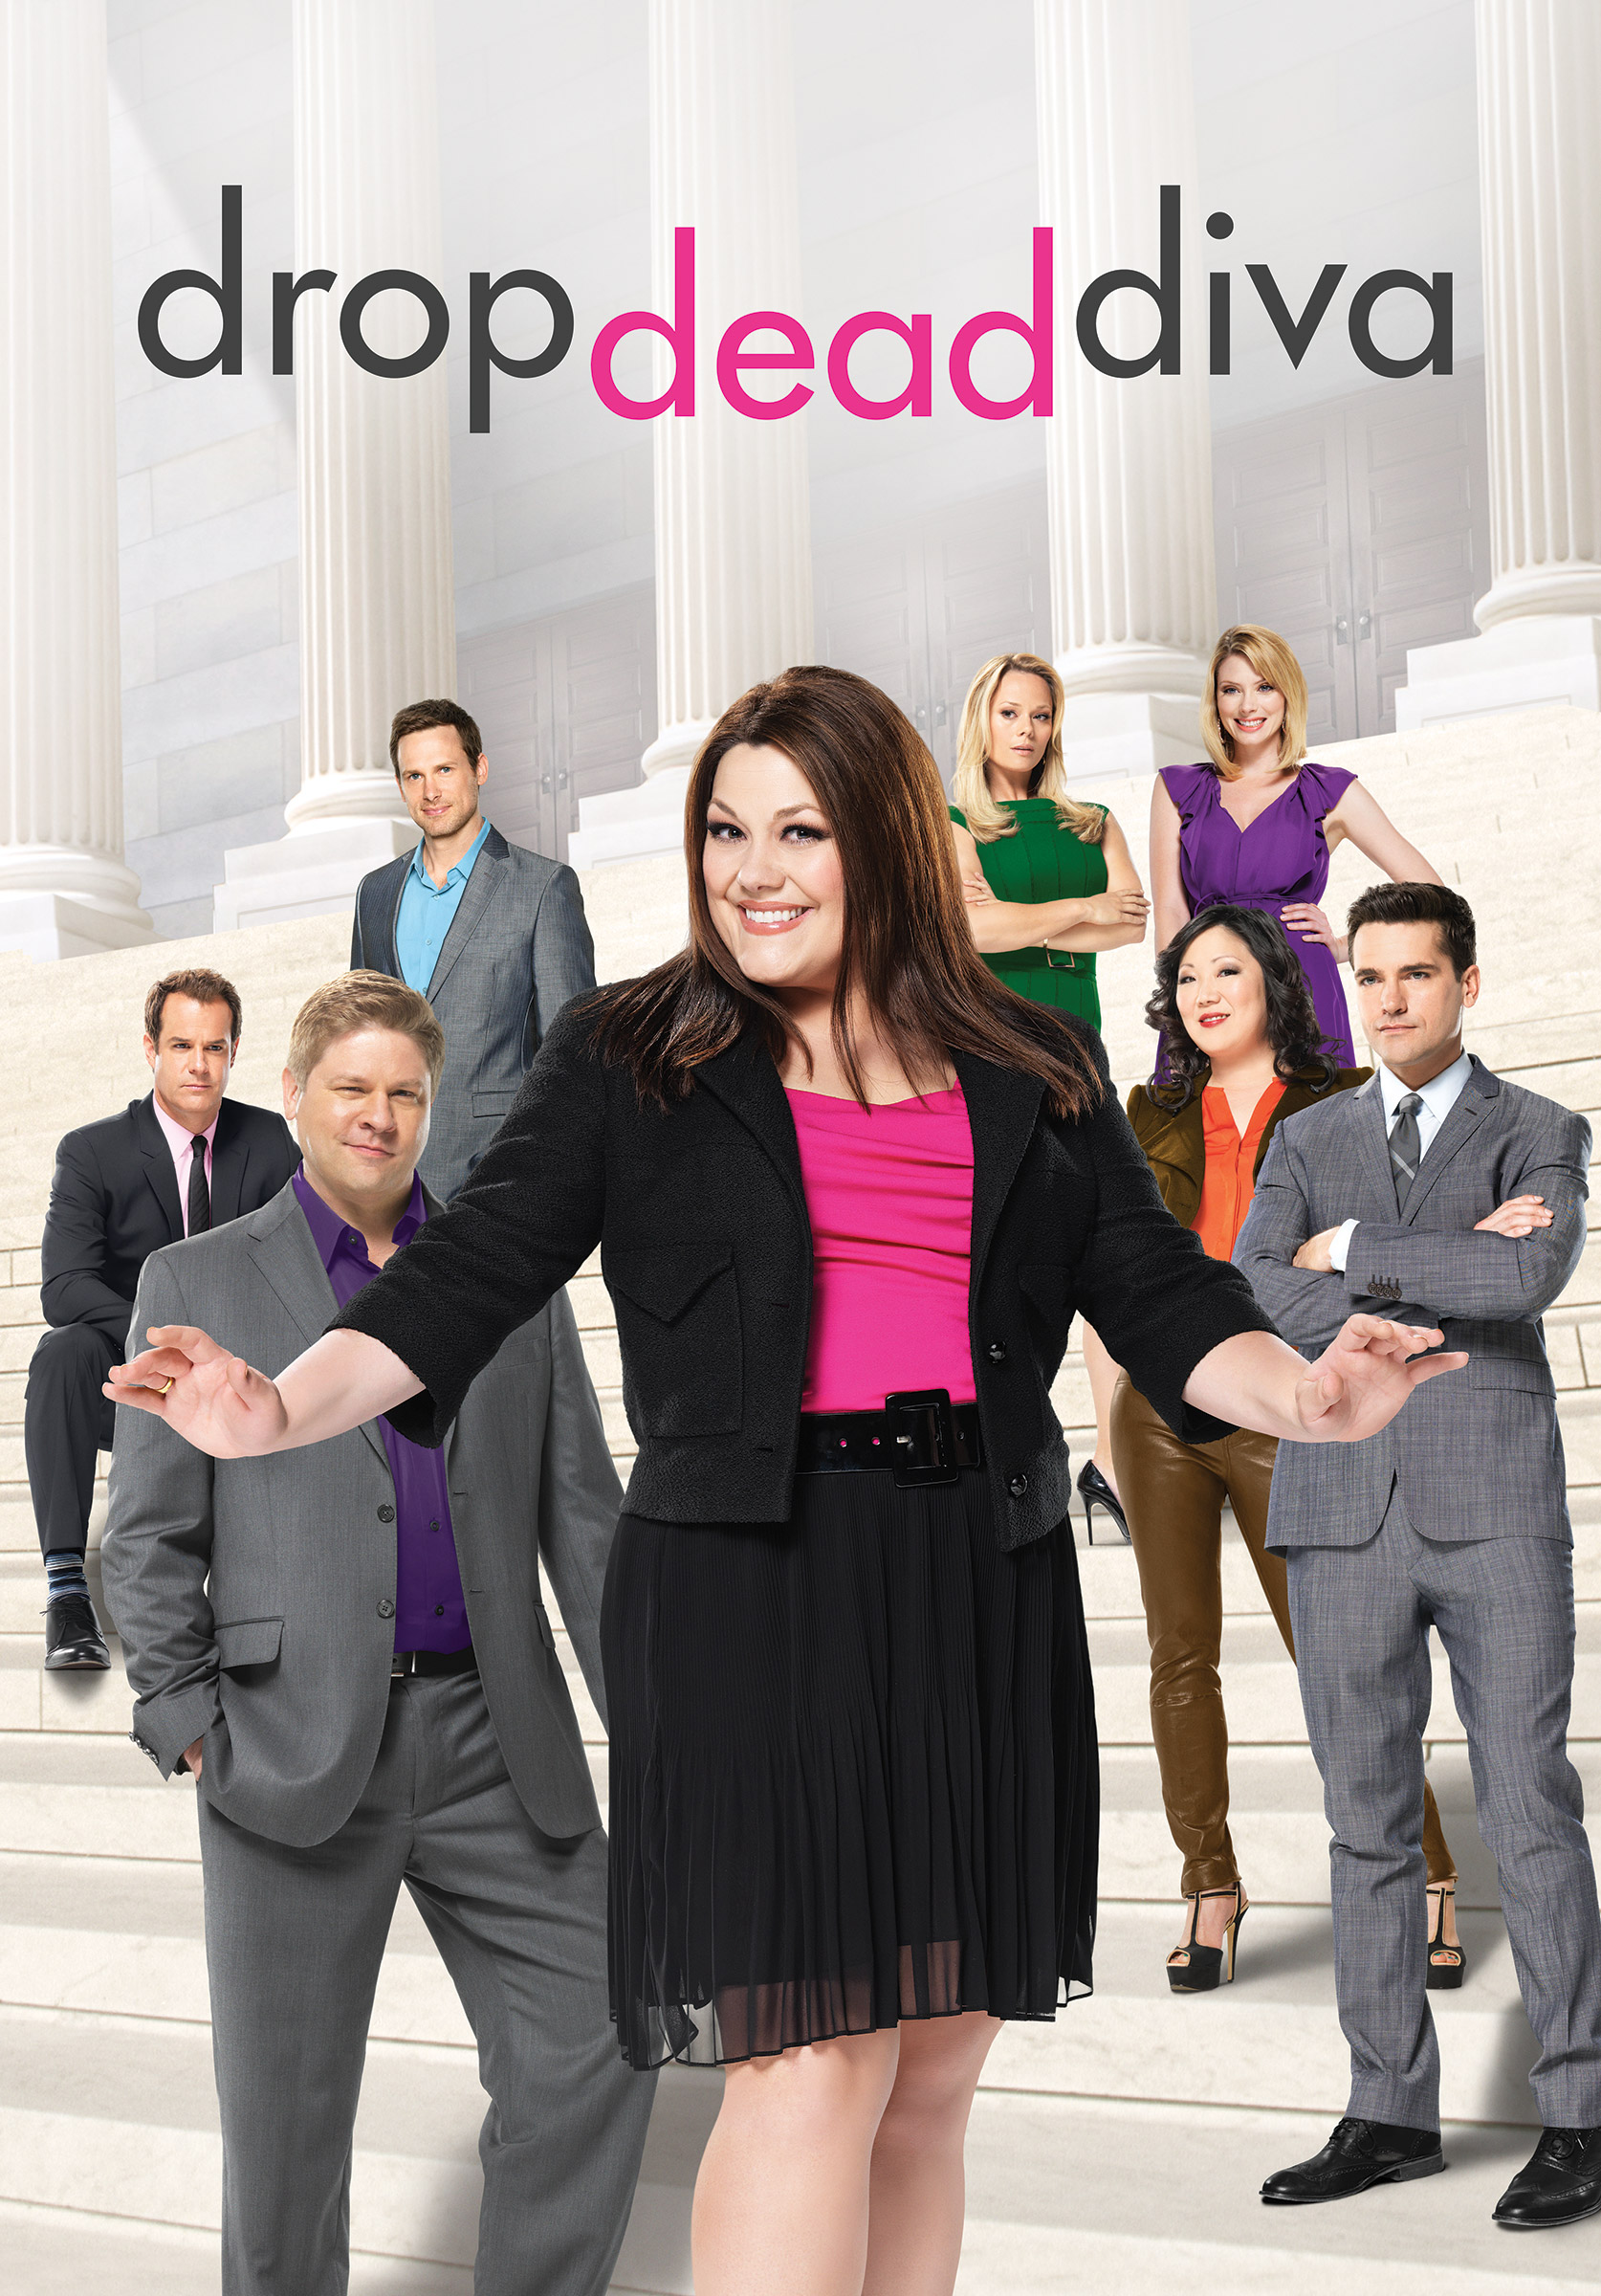 Drop dead diva sony pictures museum - Drop dead diva seasons ...